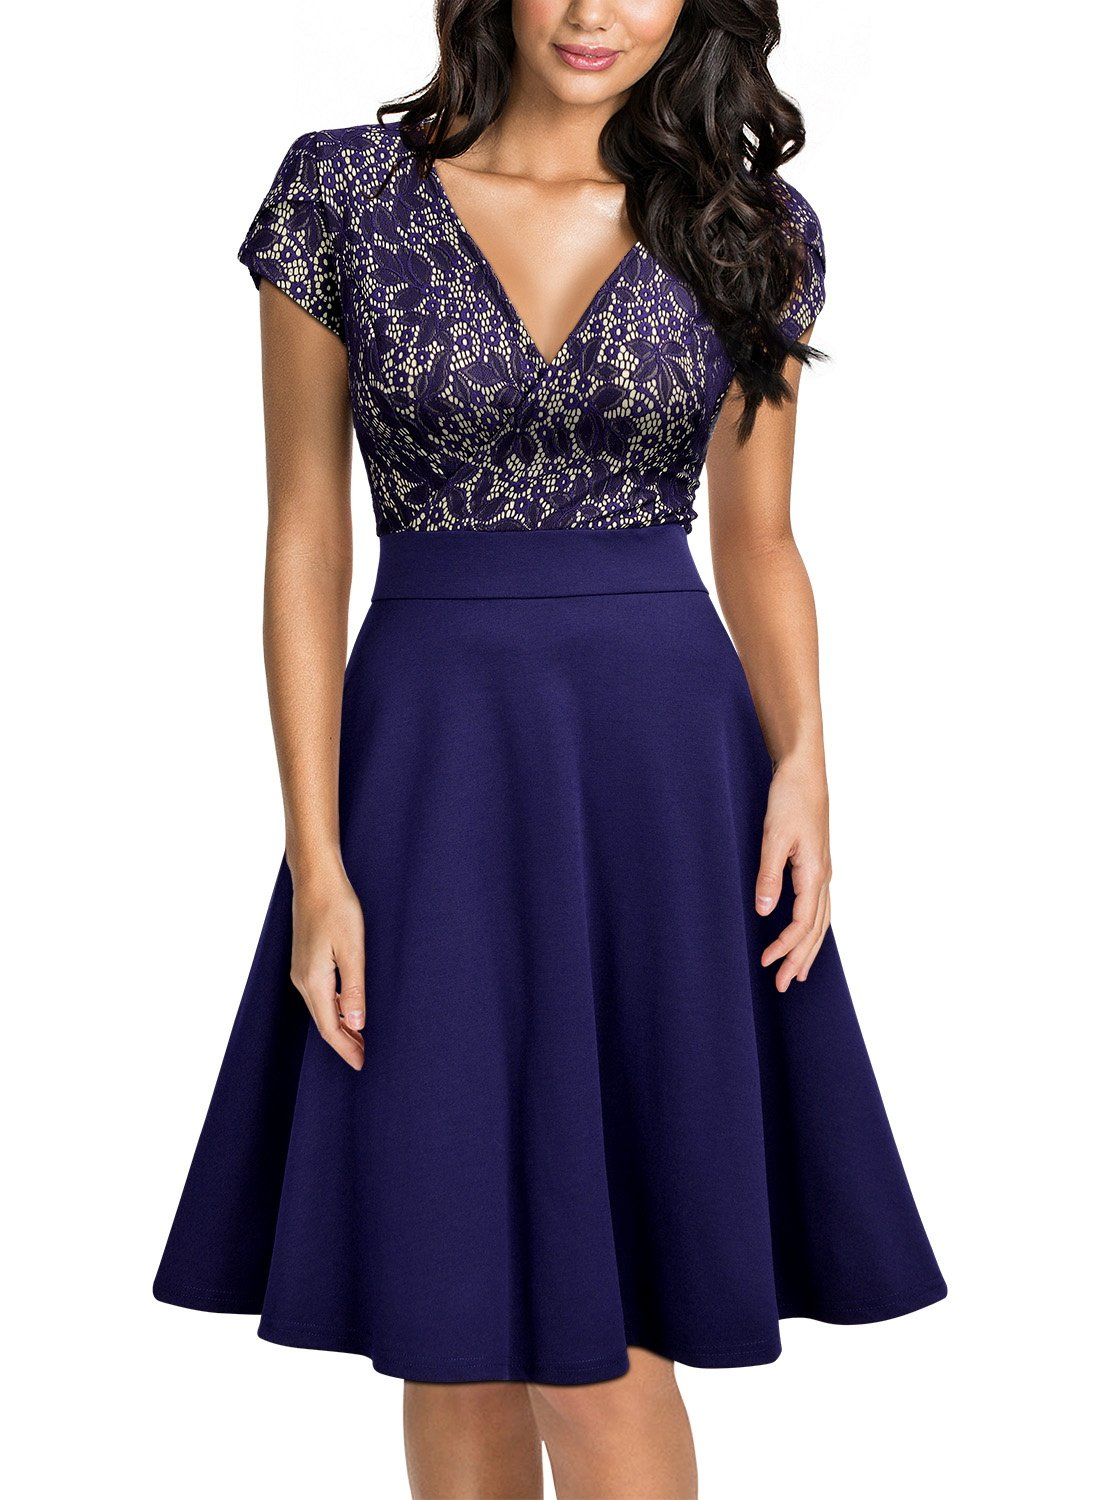 Miusol Women's Elegant Floral Lace V-Neck Contrast Cocktail Party Dress,Blue,X-Large